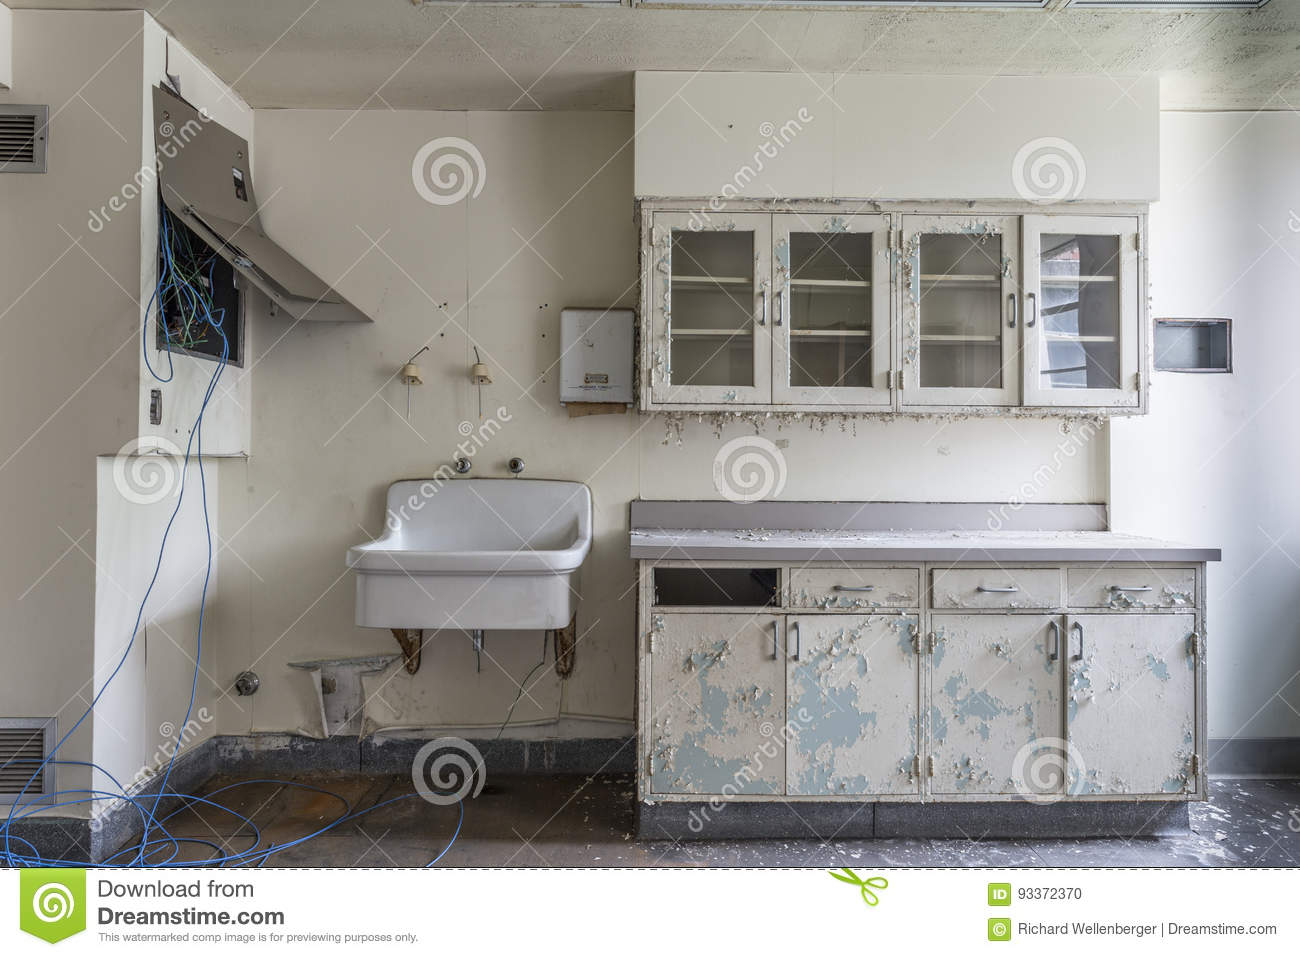 Room with sink in an abandoned hospital